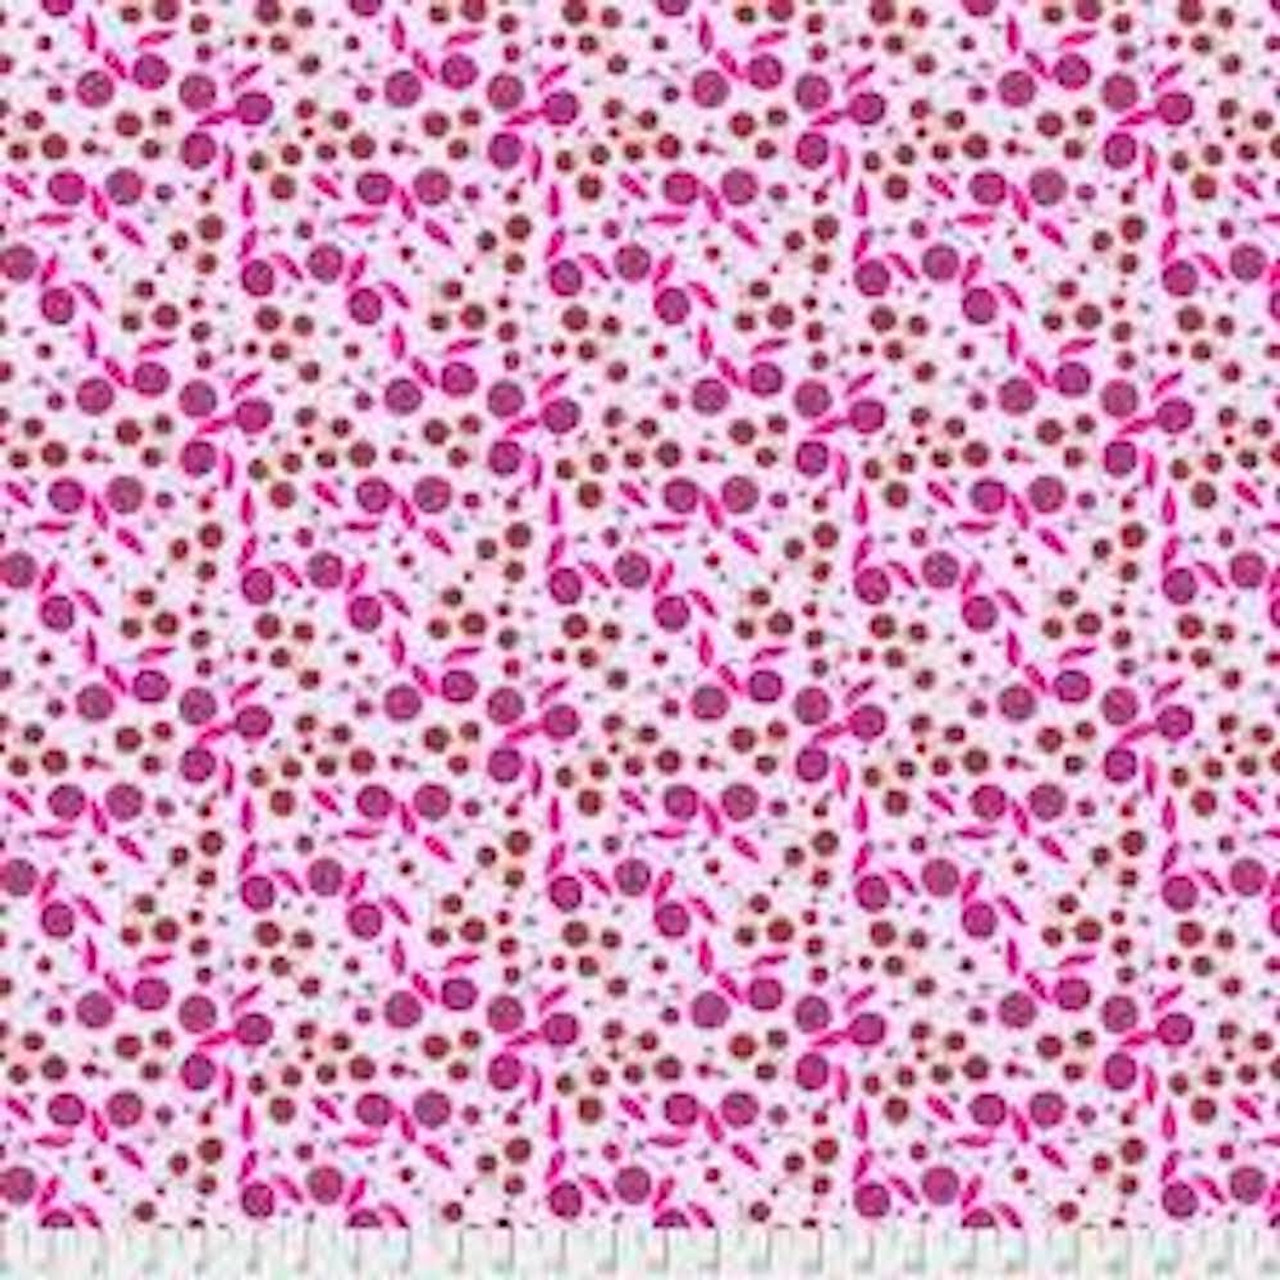 Shannon Newlin Garden Dreams PWSN0014 Very Berry Lavender Cotton Fabric By Yd